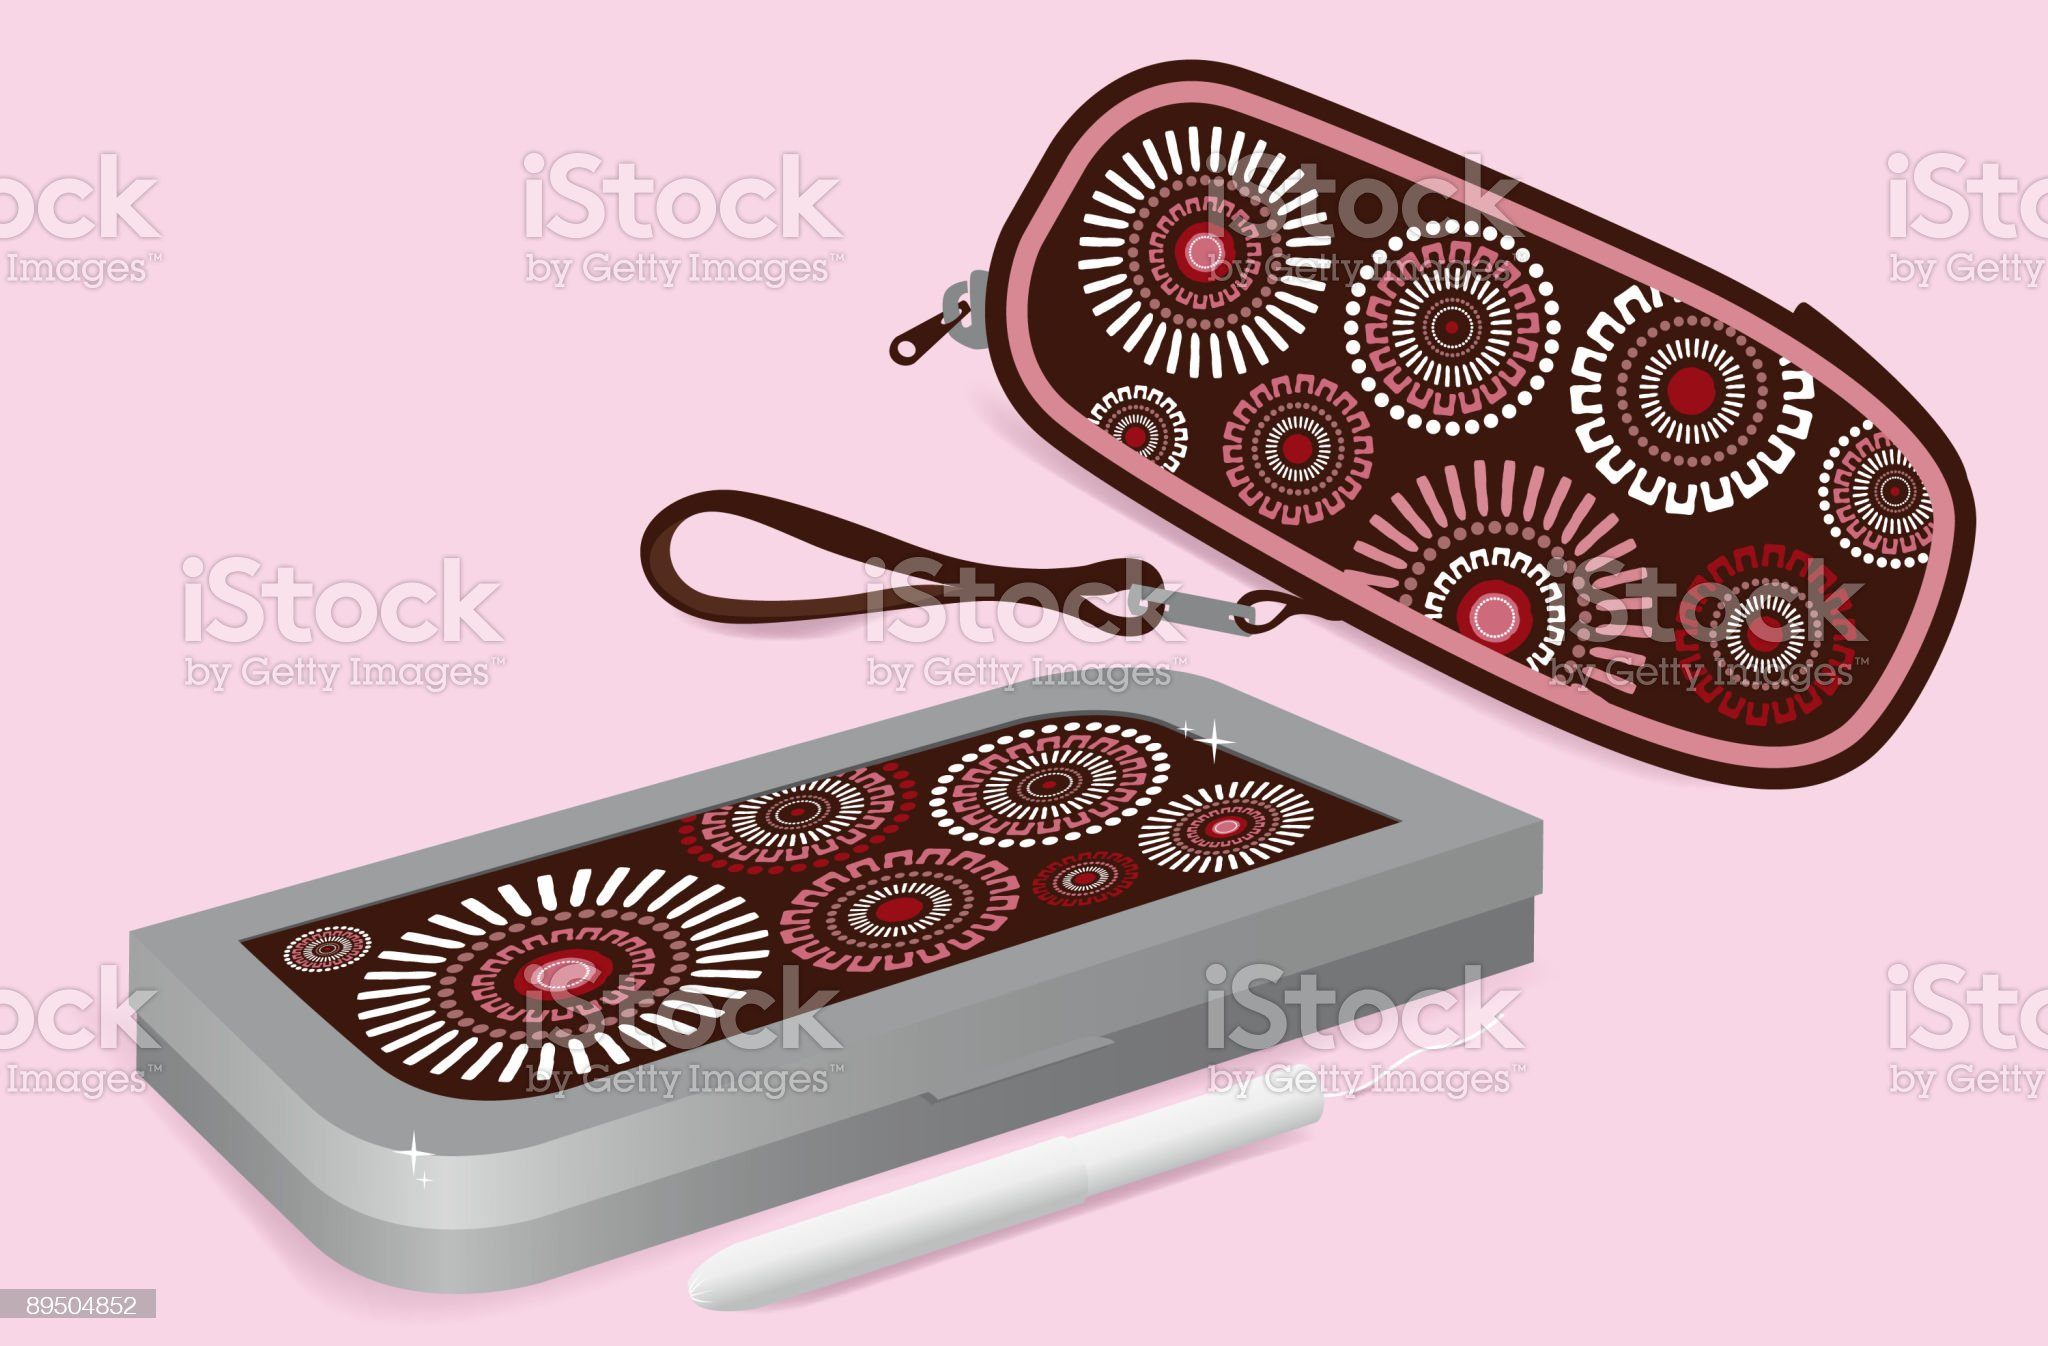 Metal and soft tampon cases royalty-free stock vector art